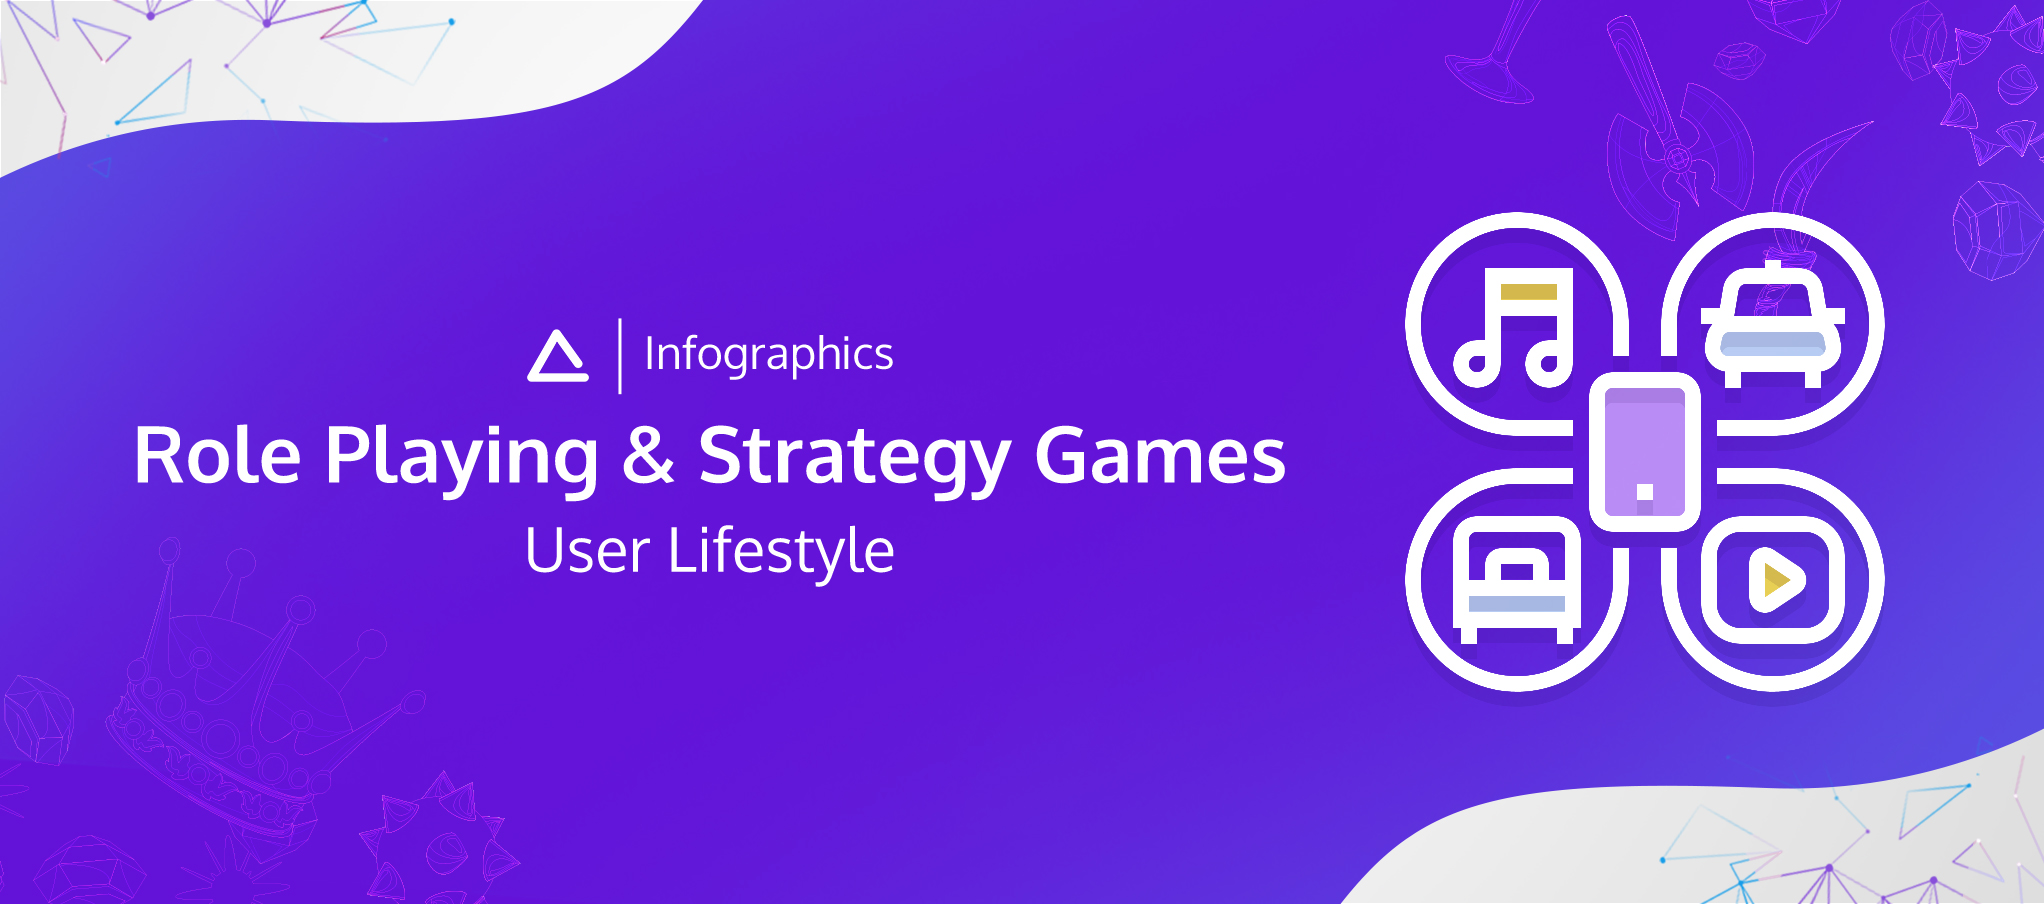 Role playing and strategy games